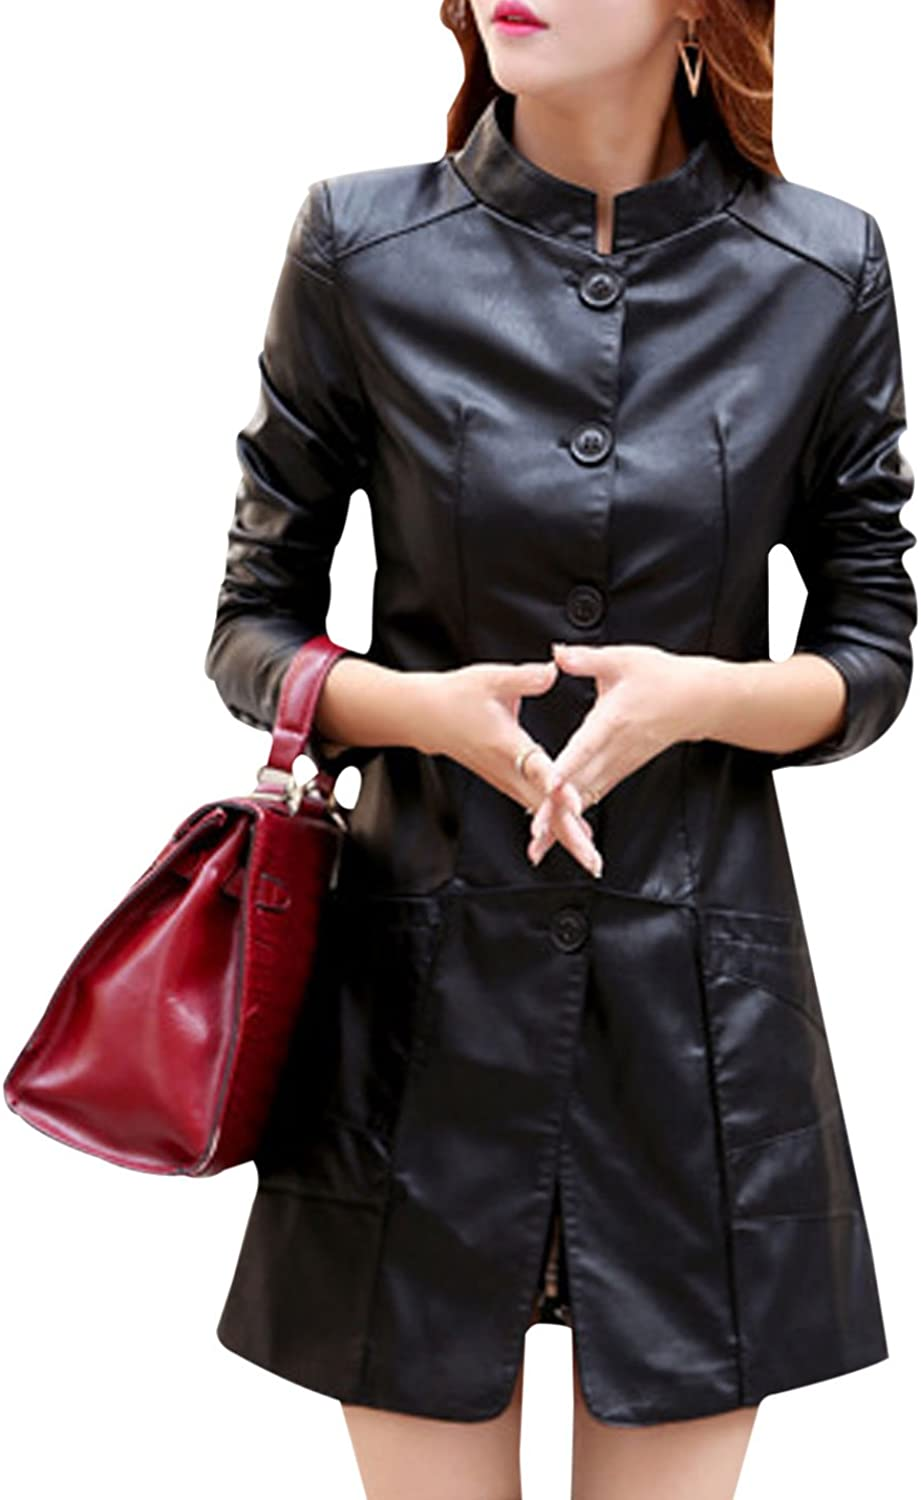 Yeokou Women's Button Faux Leather PU Slim MidLong Trench Coat Jacket Outerwear